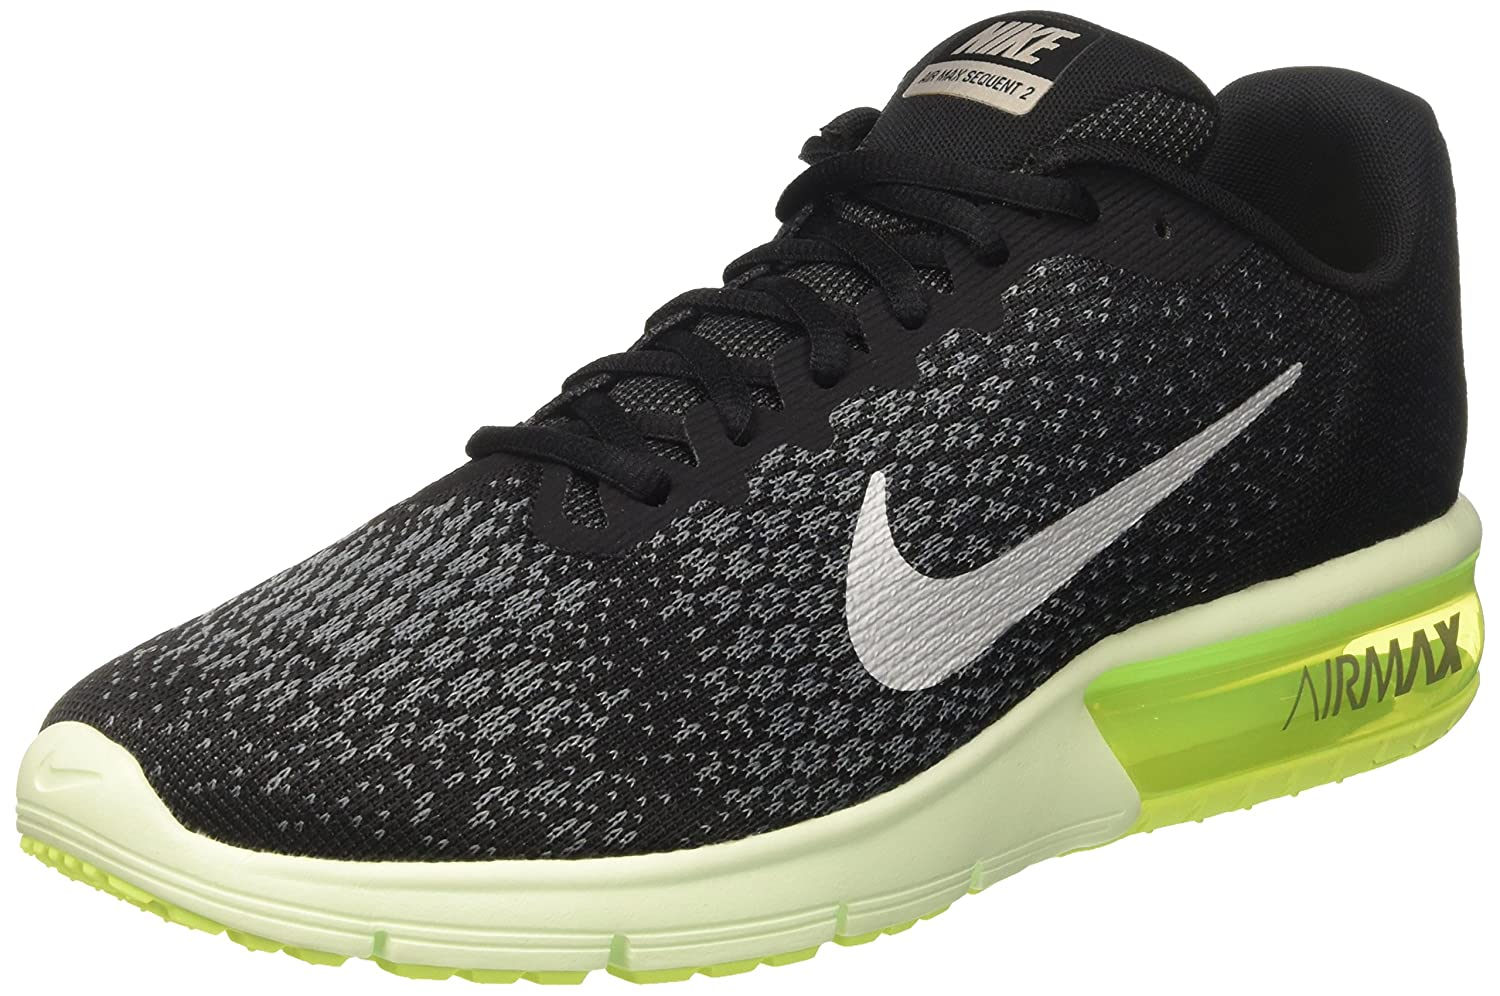 NIKE Men's Air Max Sequent 2 Running Shoe B01MG91BH0 7|Black/Mtlc Cool Grey